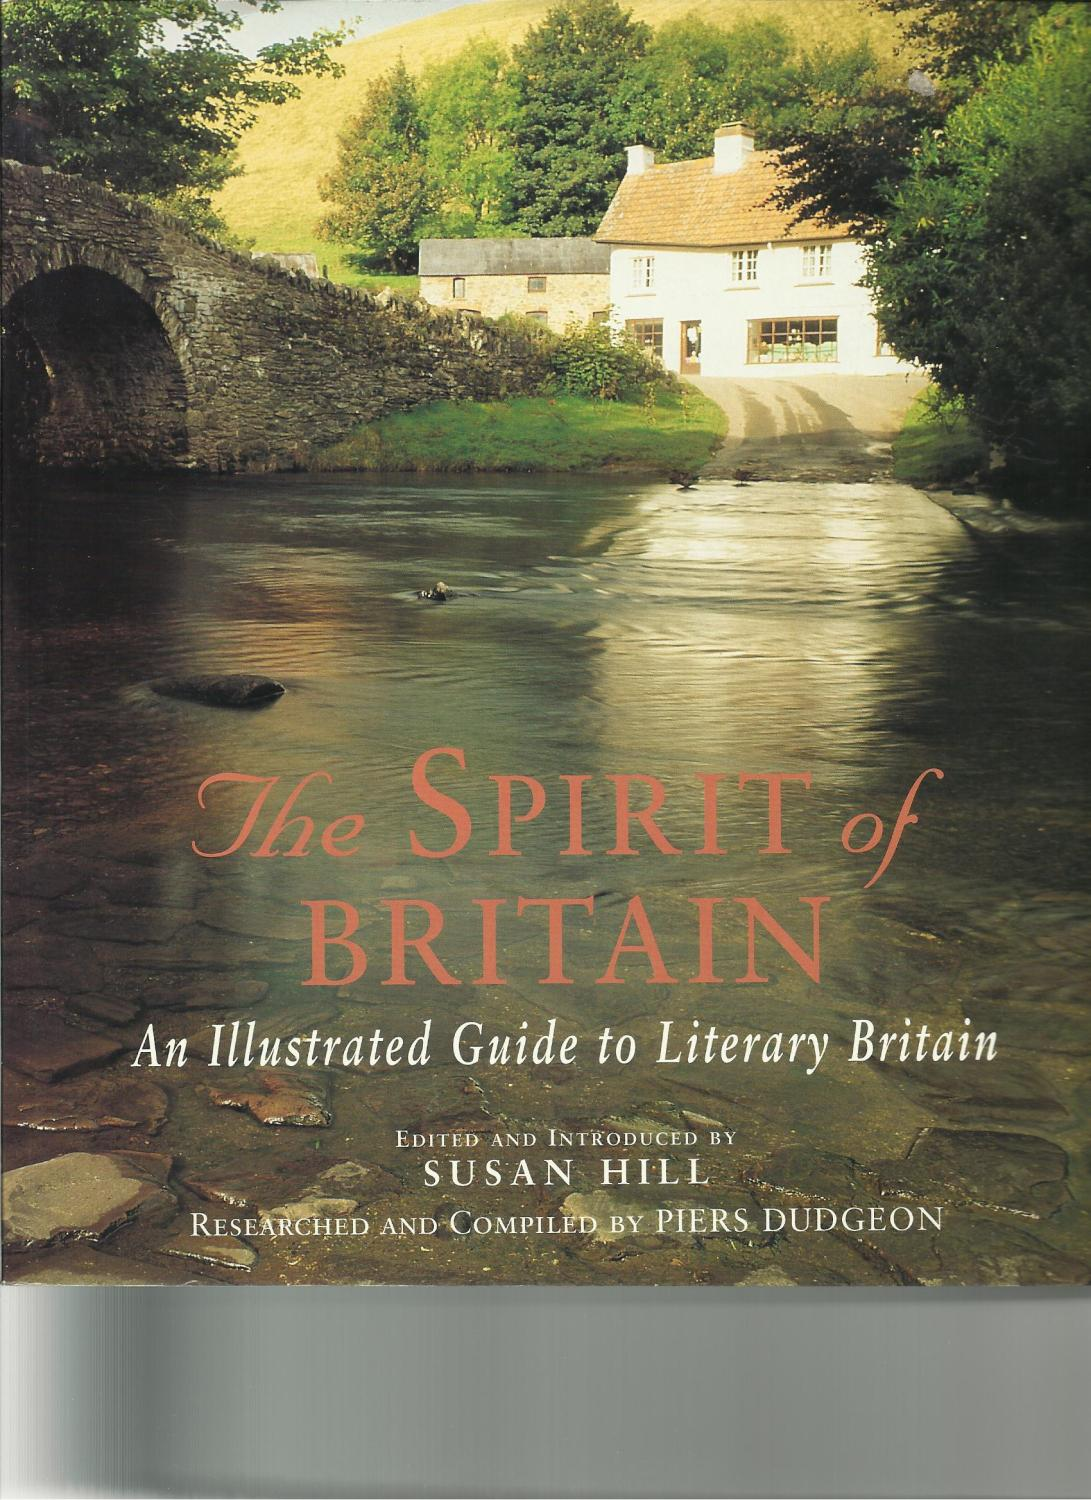 The Spirit of Britain : An Illustrated Guide to Literary Britain - Hill, Susan, Edited and Introduced By; Dudgeon, Piers, researched and compiled by.